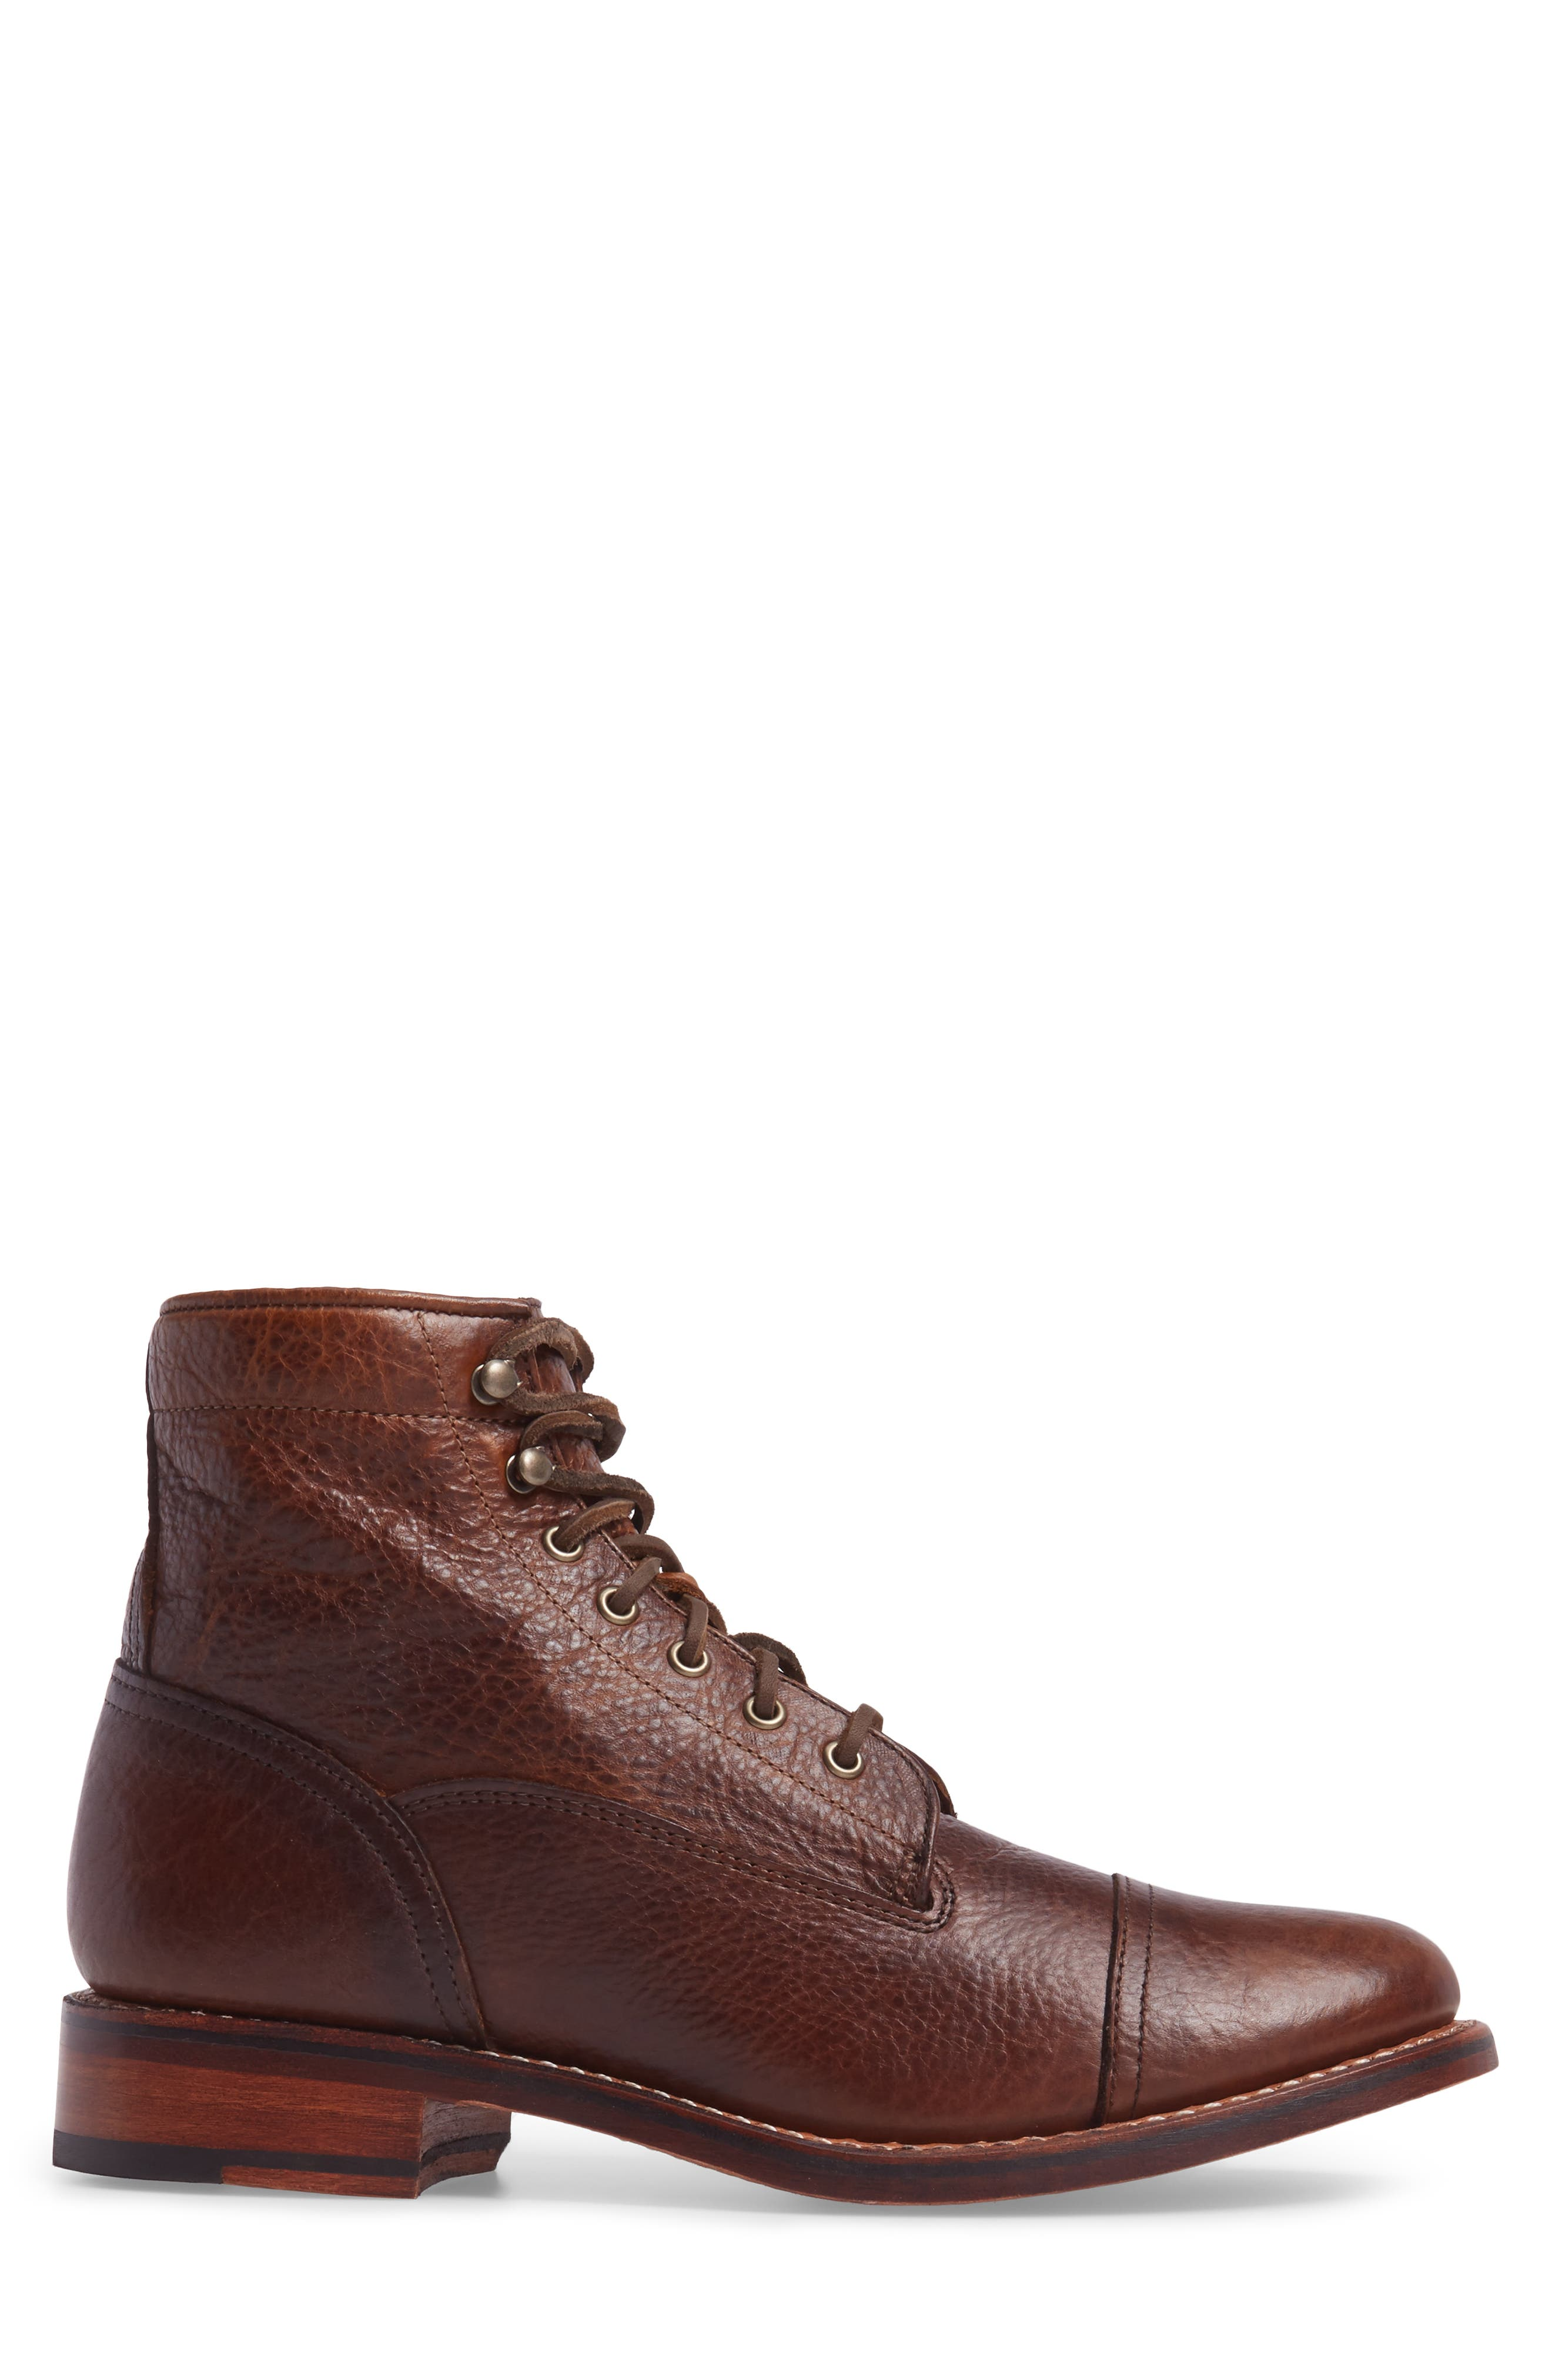 Ariat Highlands Cap Toe Boot,                             Alternate thumbnail 3, color,                             Whiskey Bourbon Leather